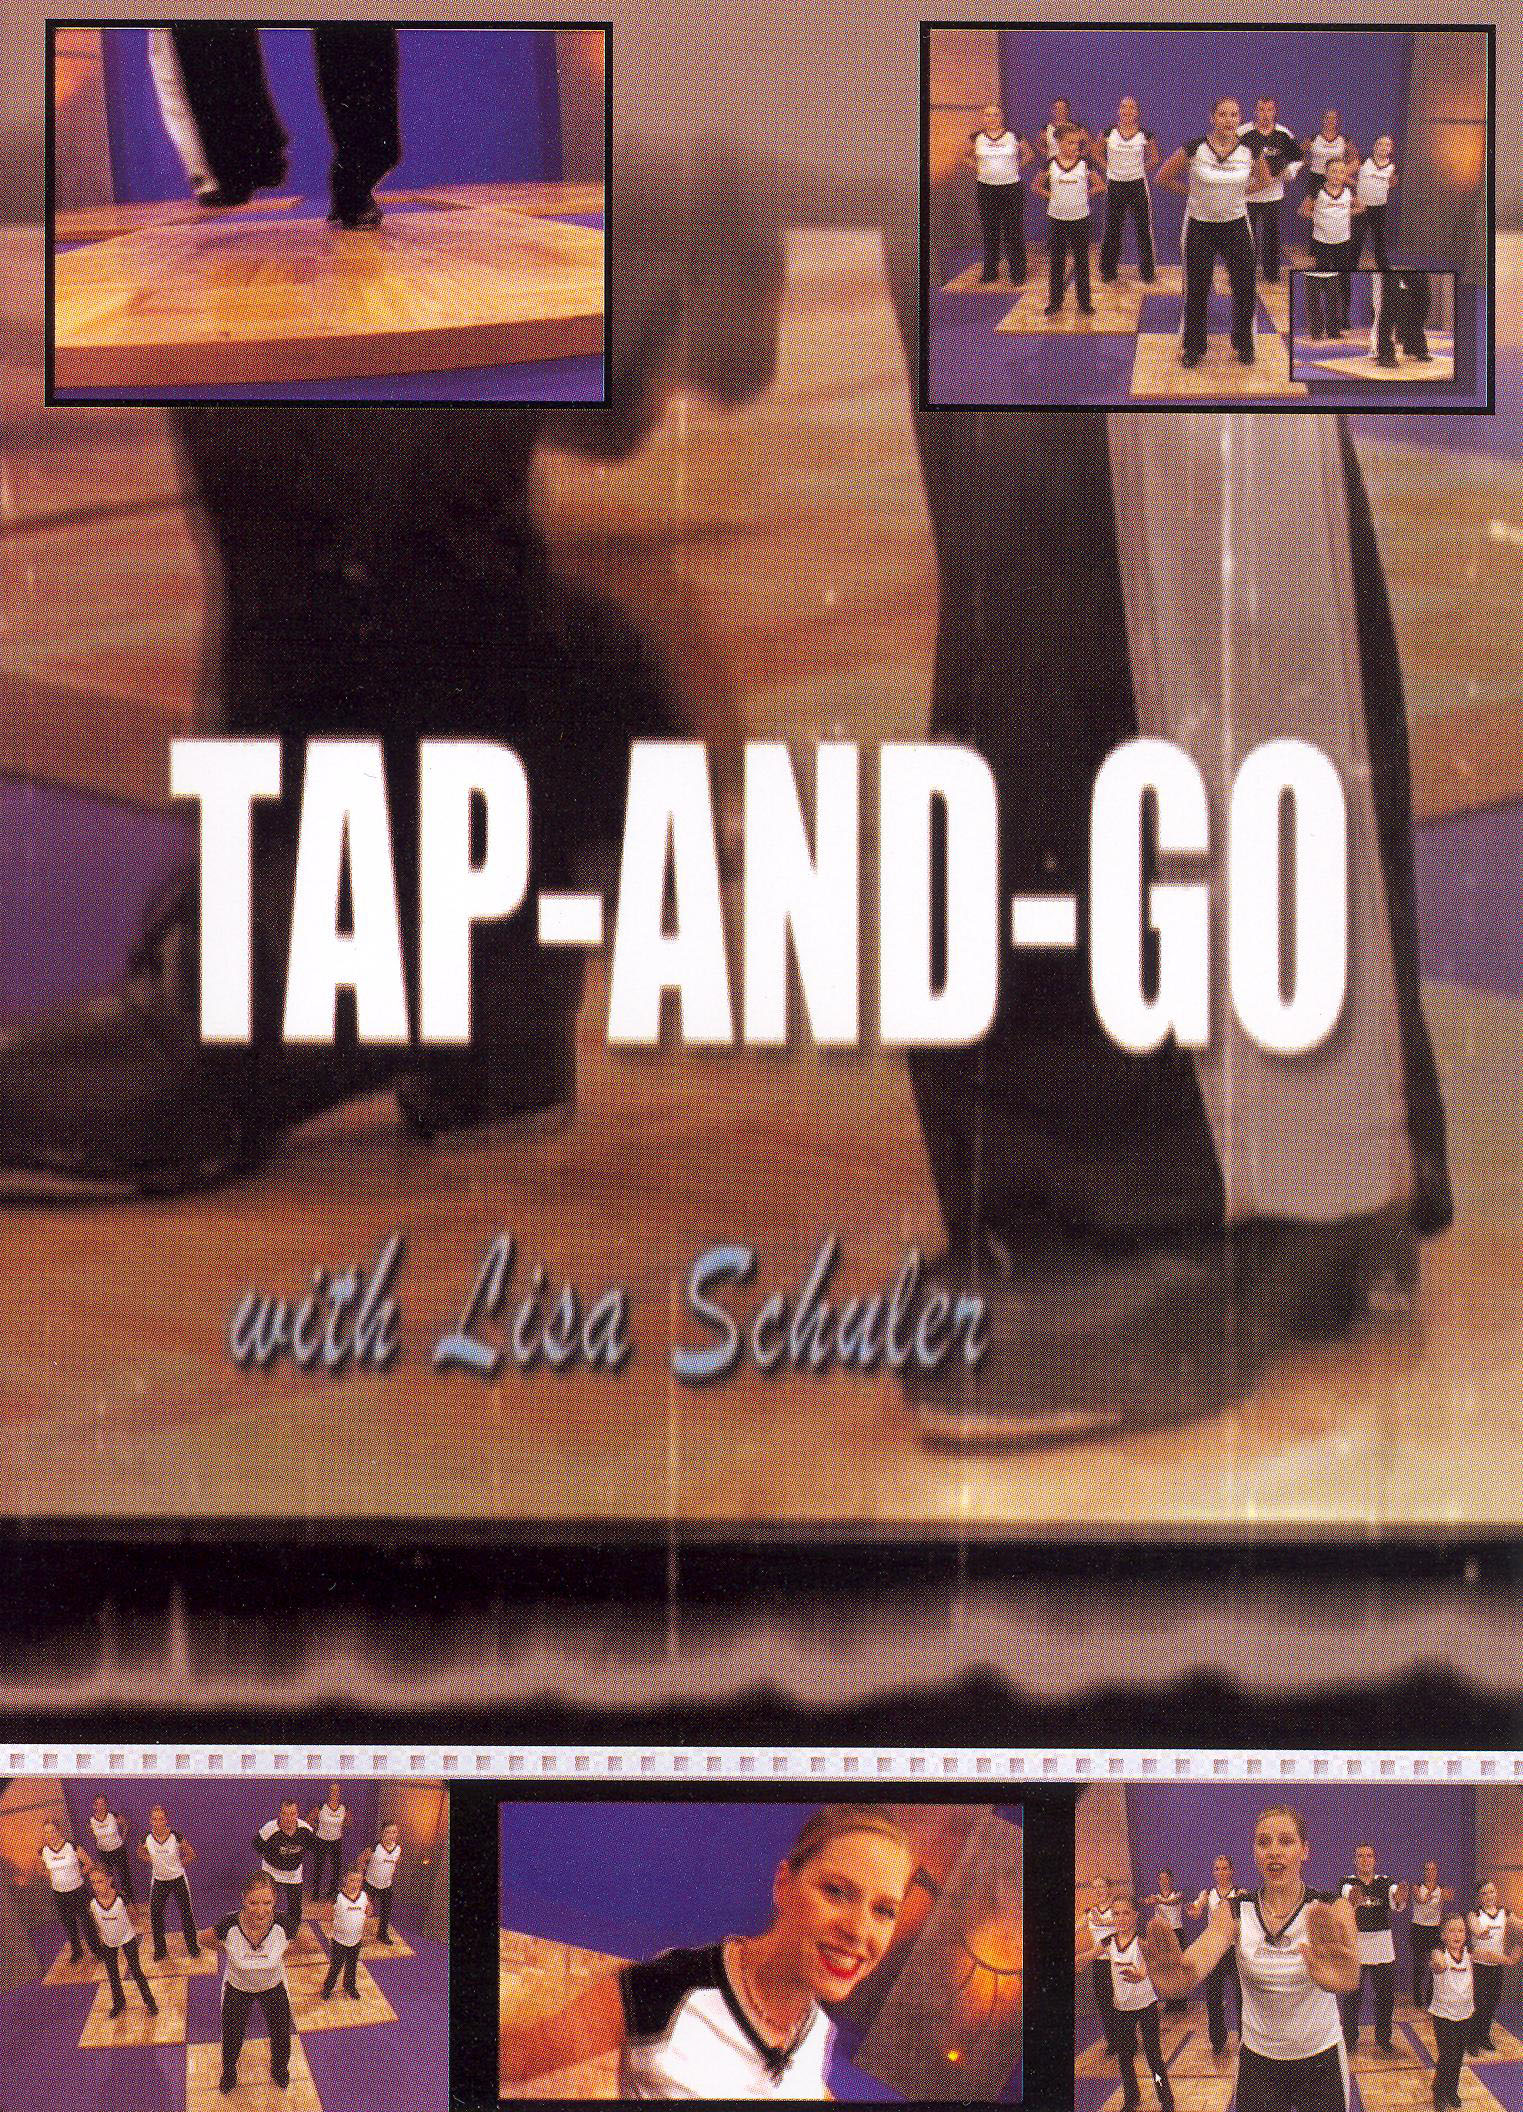 Tap-and-Go With Lisa Schuler